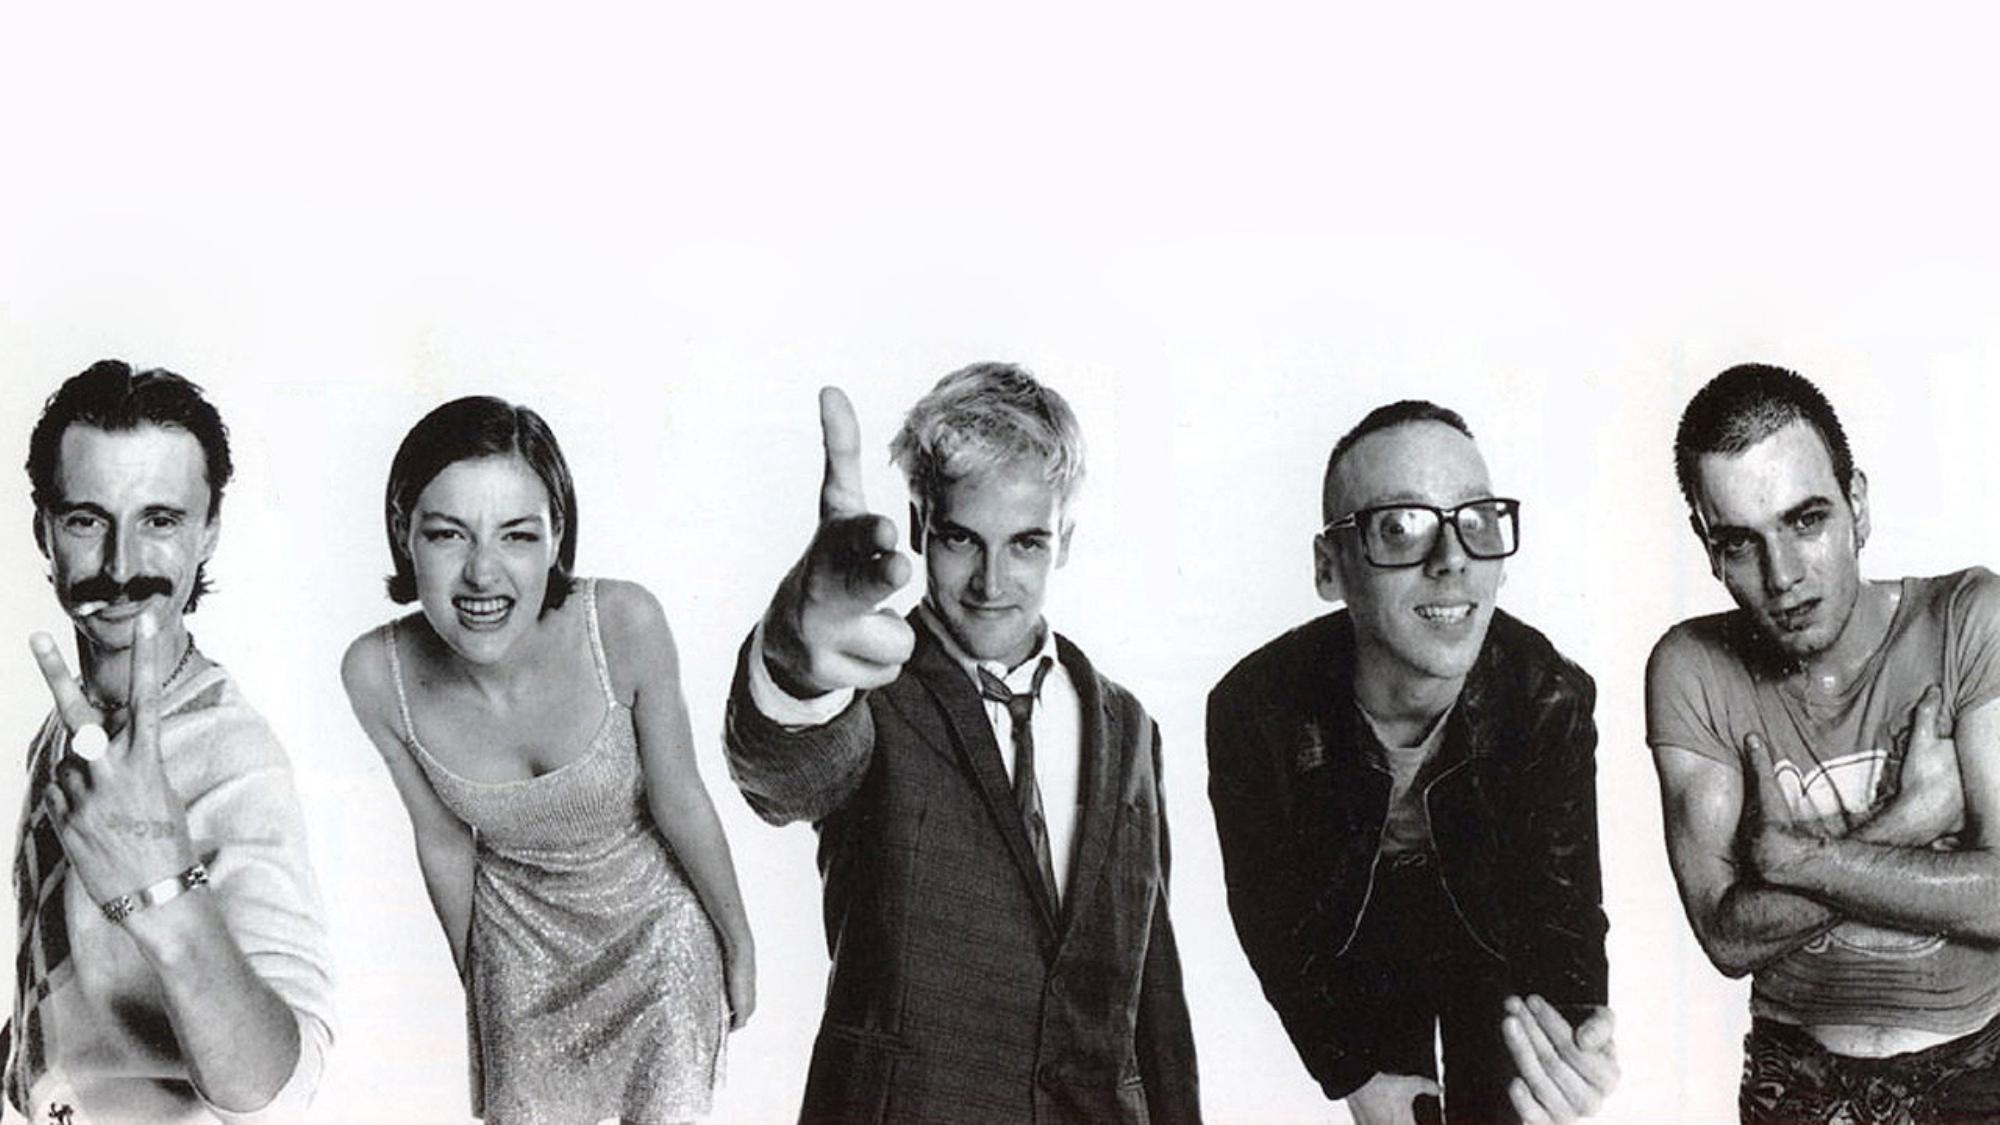 trainspotting-where-are-they-now-1441883862.jpg